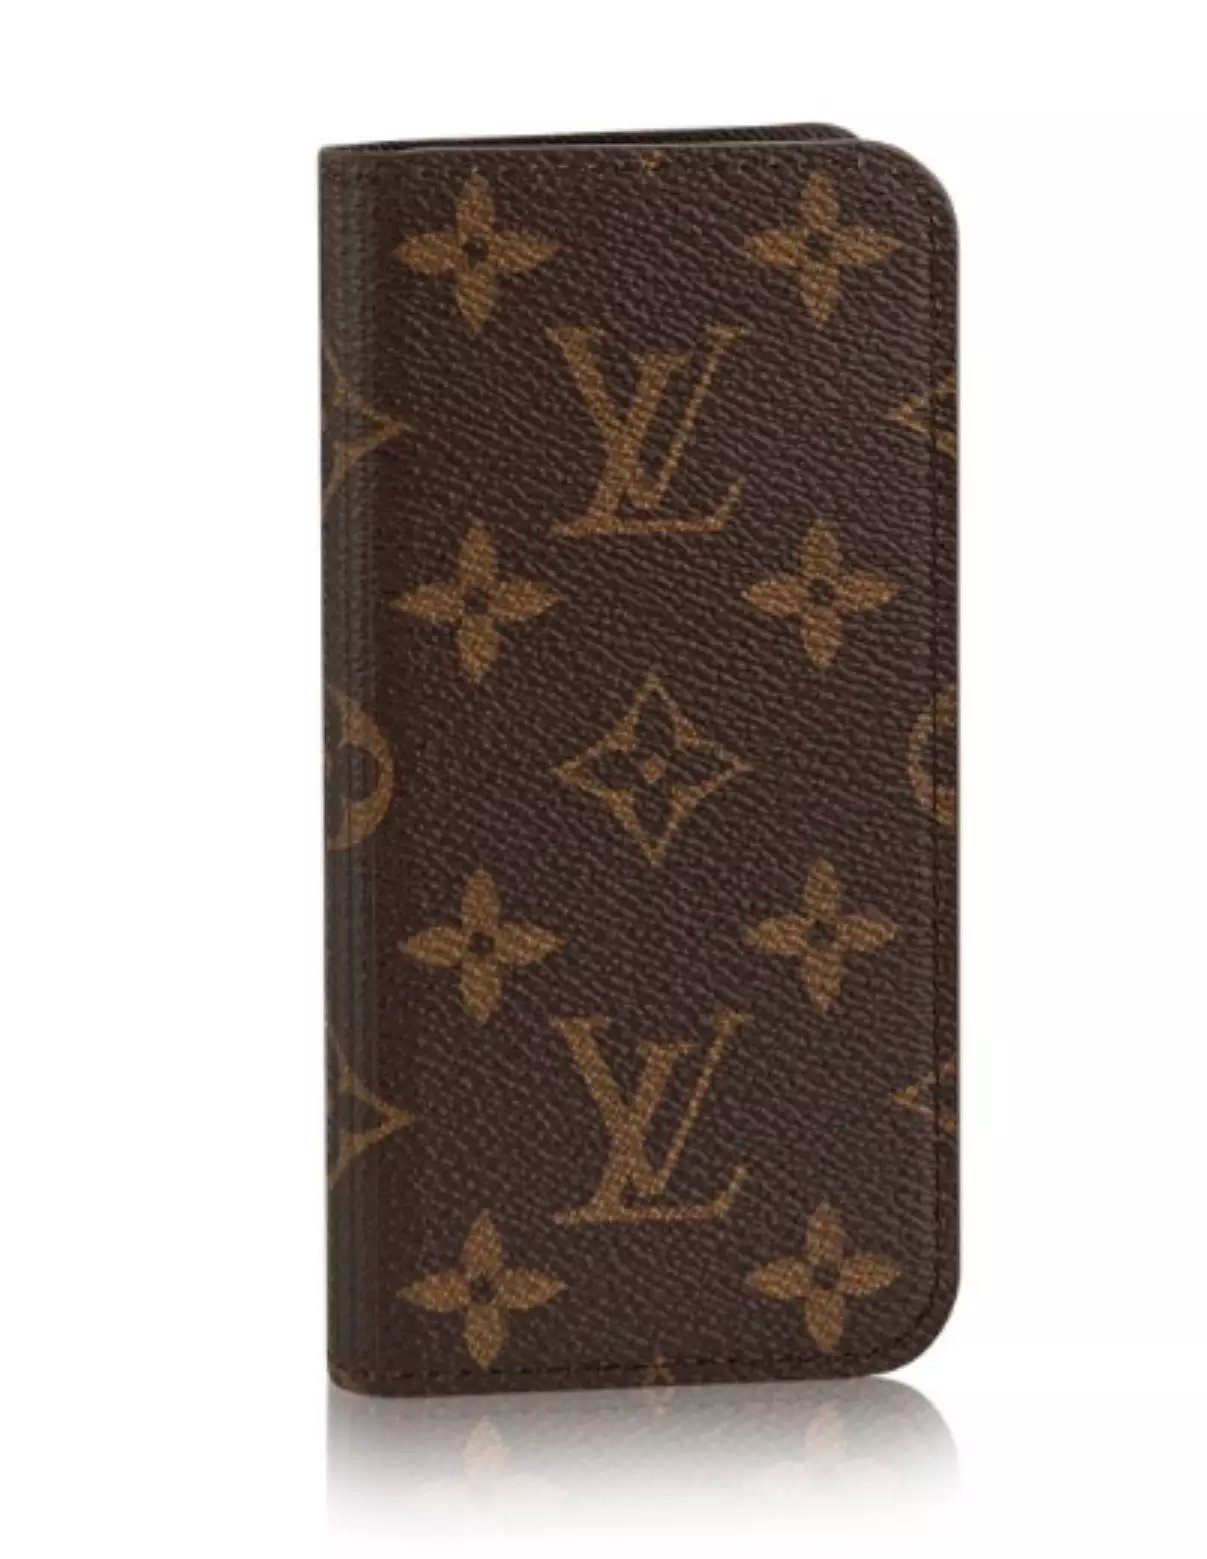 iphone handyhülle selbst gestalten iphone schutzhülle selbst gestalten Louis Vuitton iphone7 hülle iphone größe iphone rück7ite beste schutzhülle iphone 7 iphone 7 goldene hülle iphone 7 gold hülle 7 a7 iphone